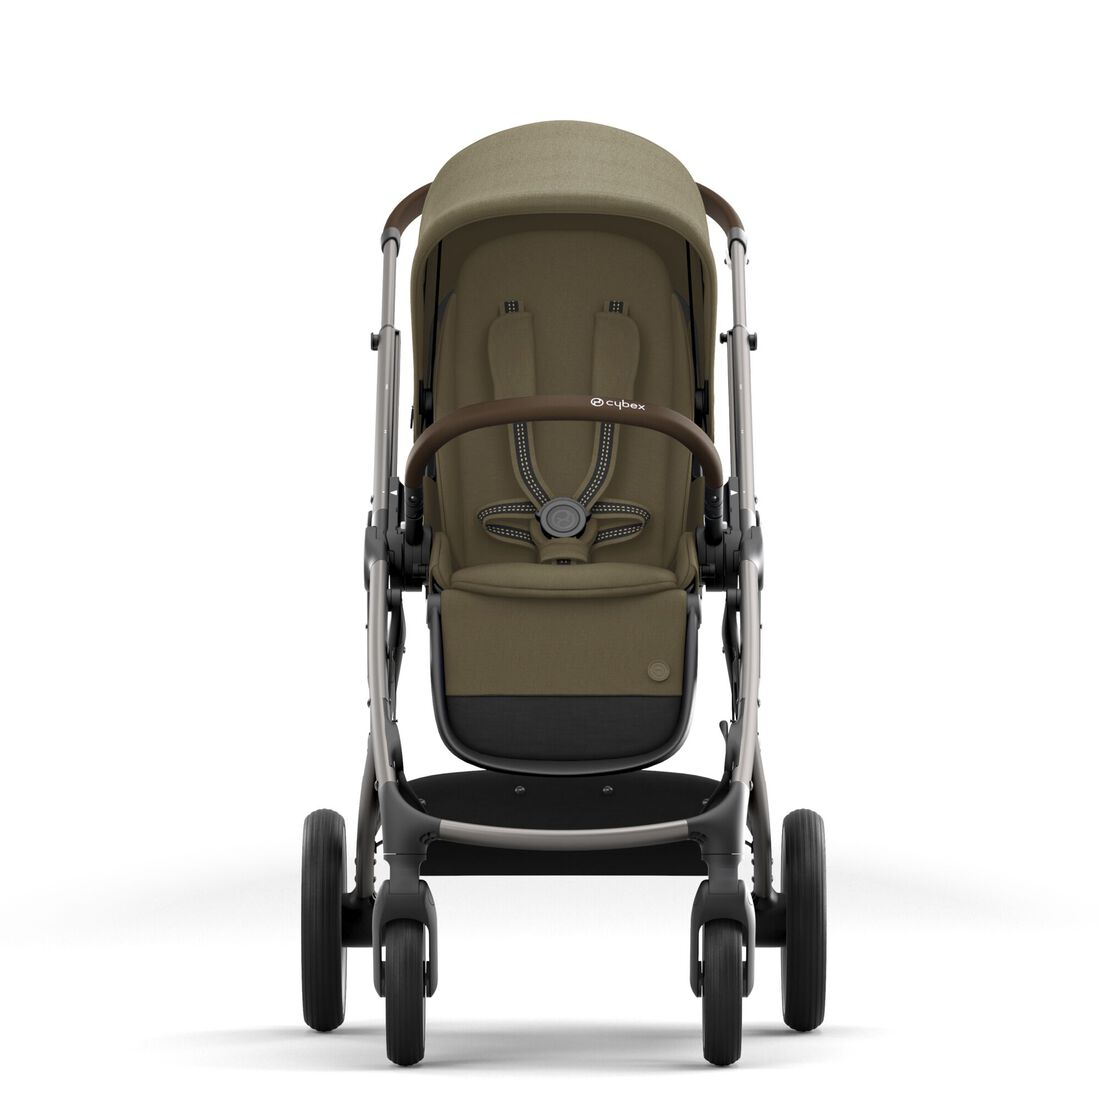 CYBEX Gazelle S - Classic Beige (Taupe Frame) in Classic Beige (Taupe Frame) large image number 5